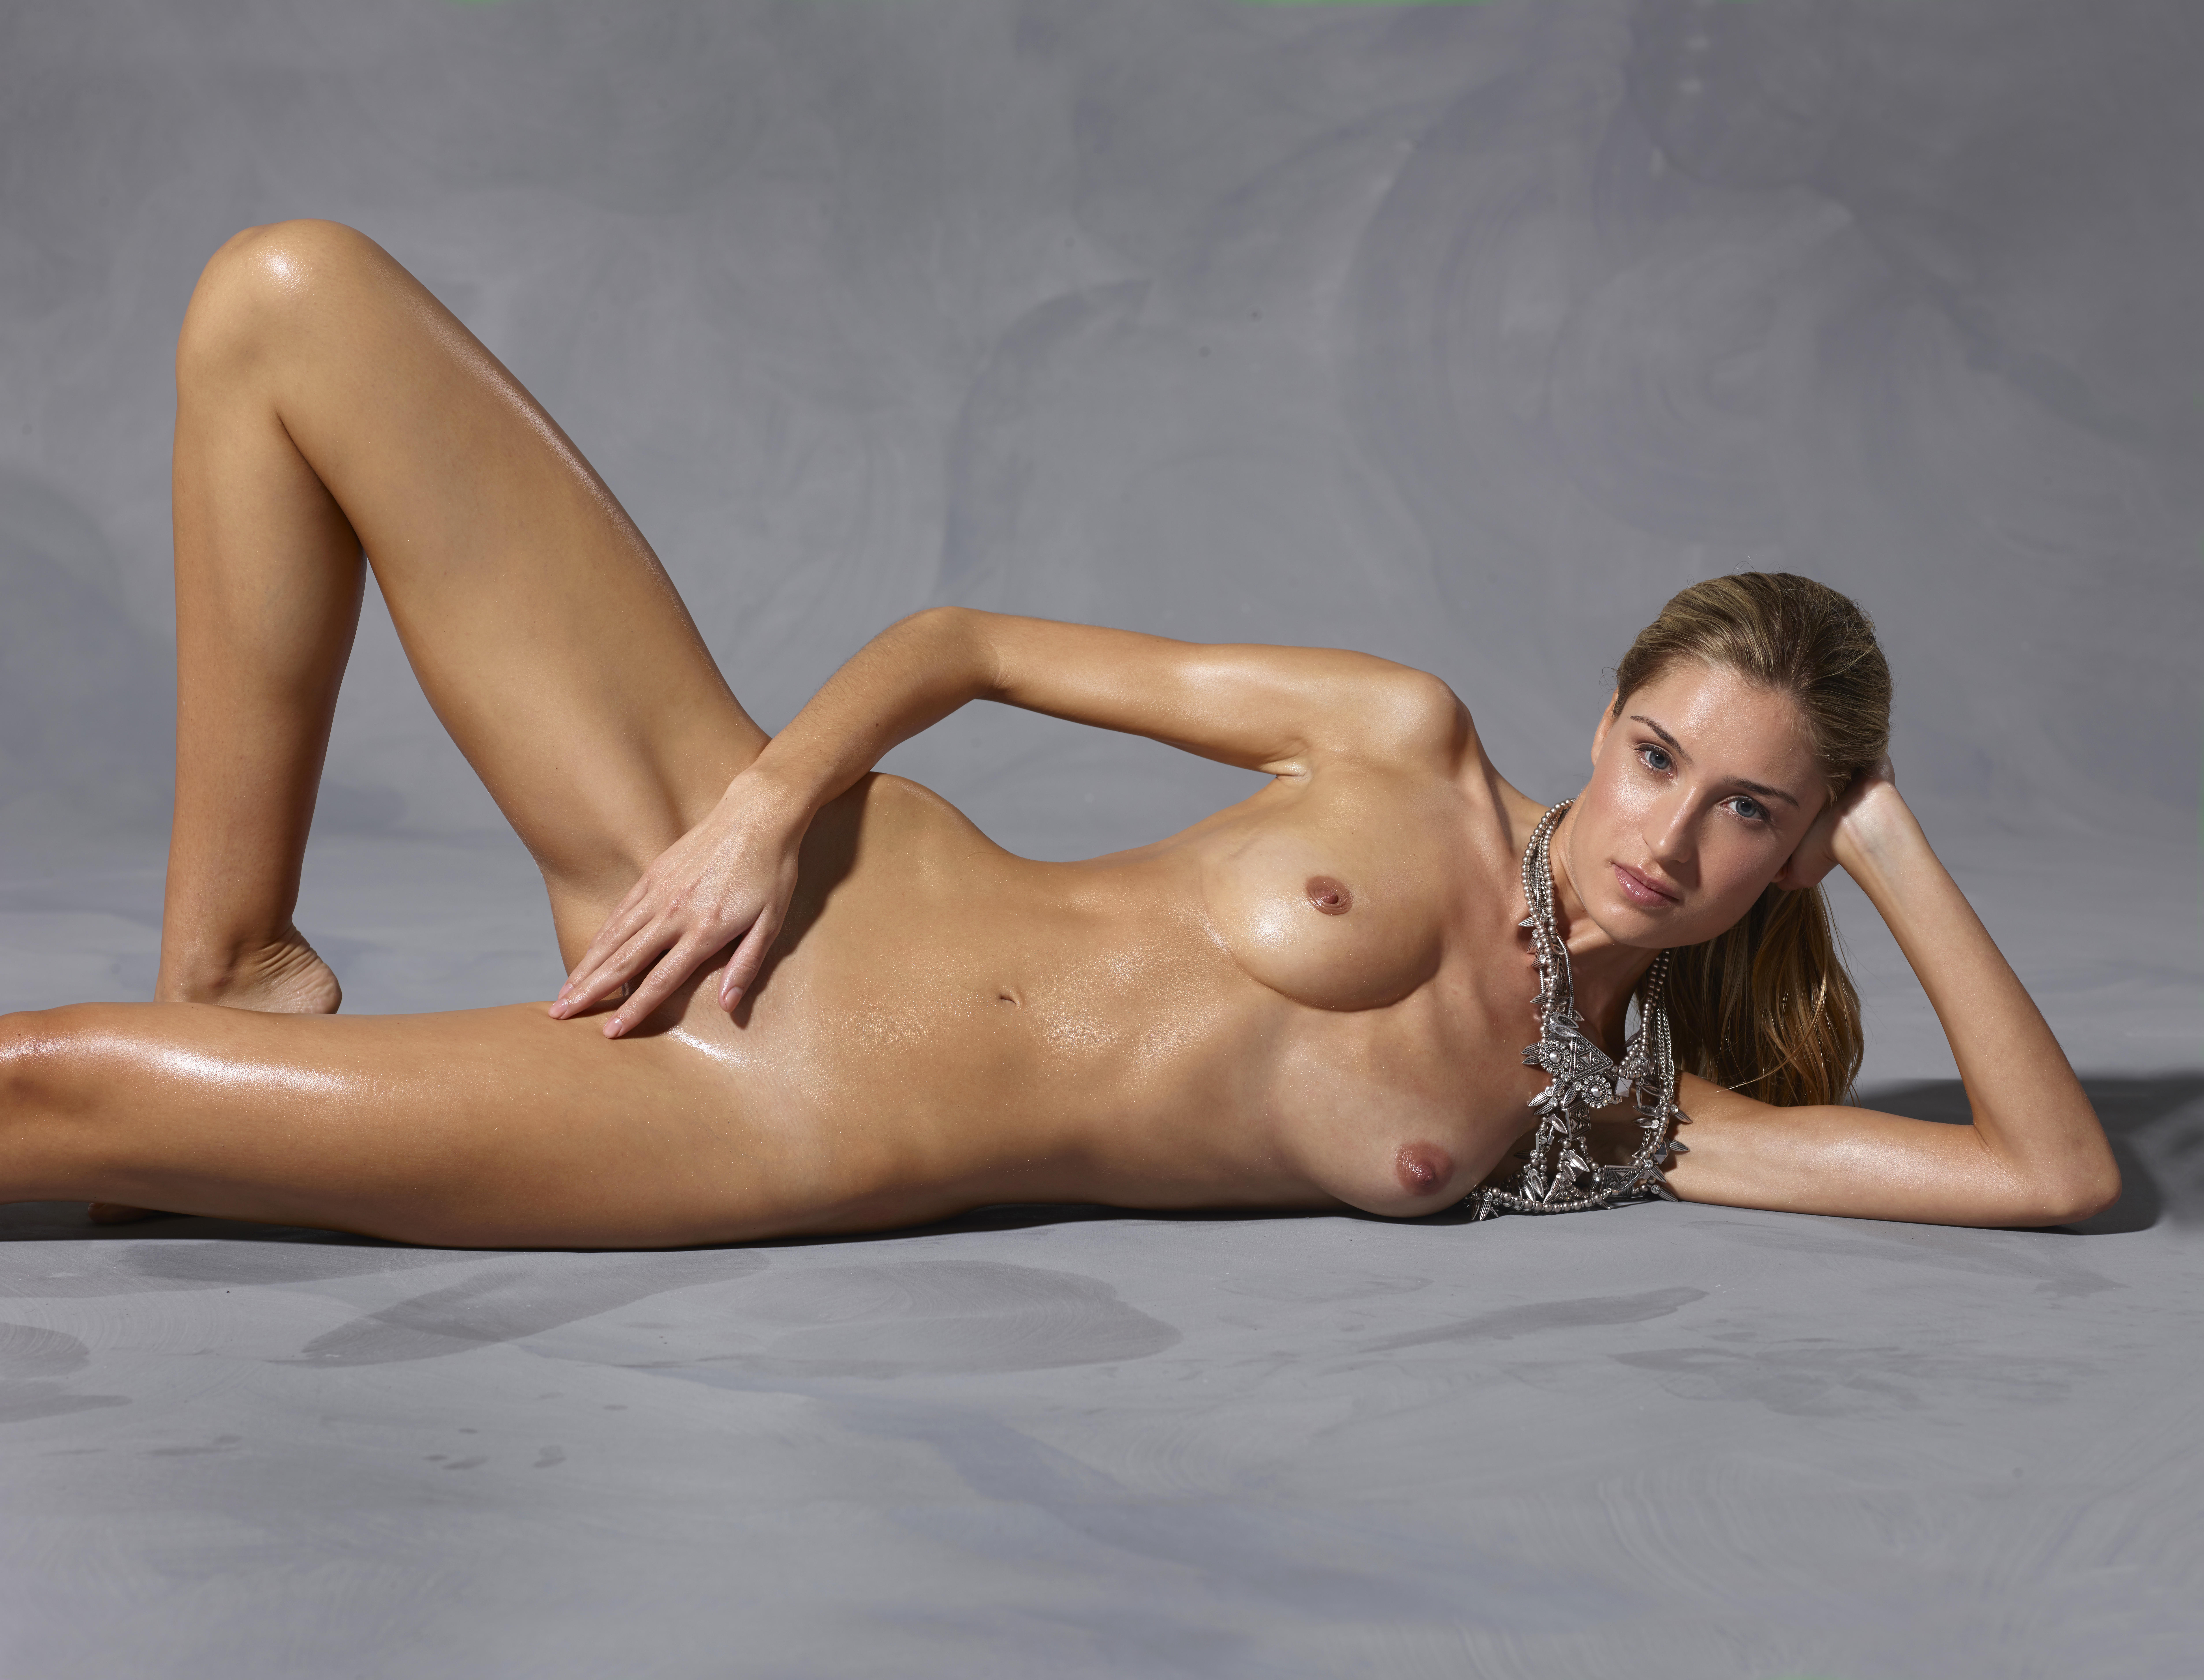 Answers models nude